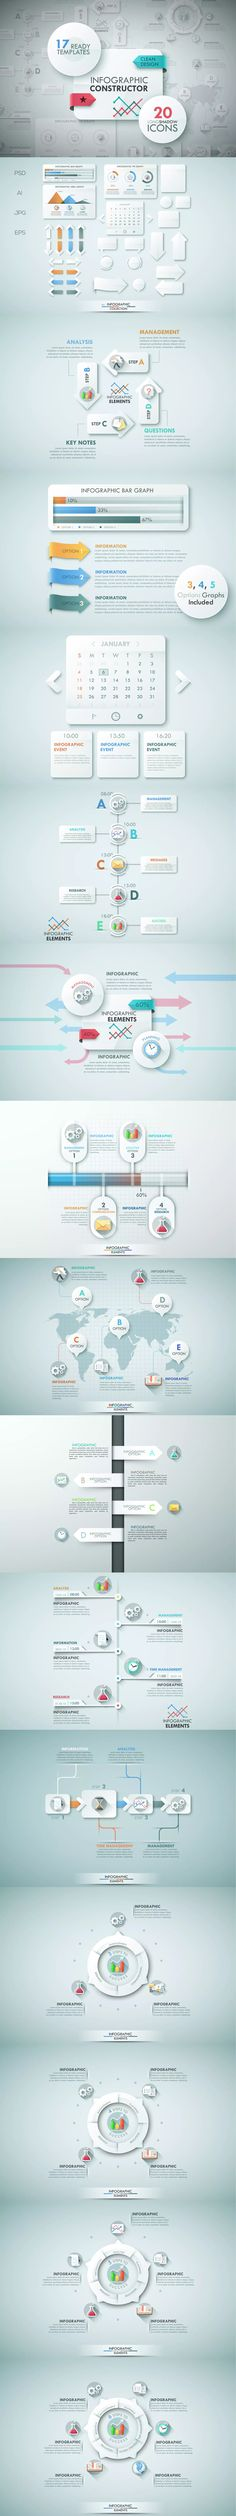 Infographic Constructor Template AI, EPS, PSD, JPG